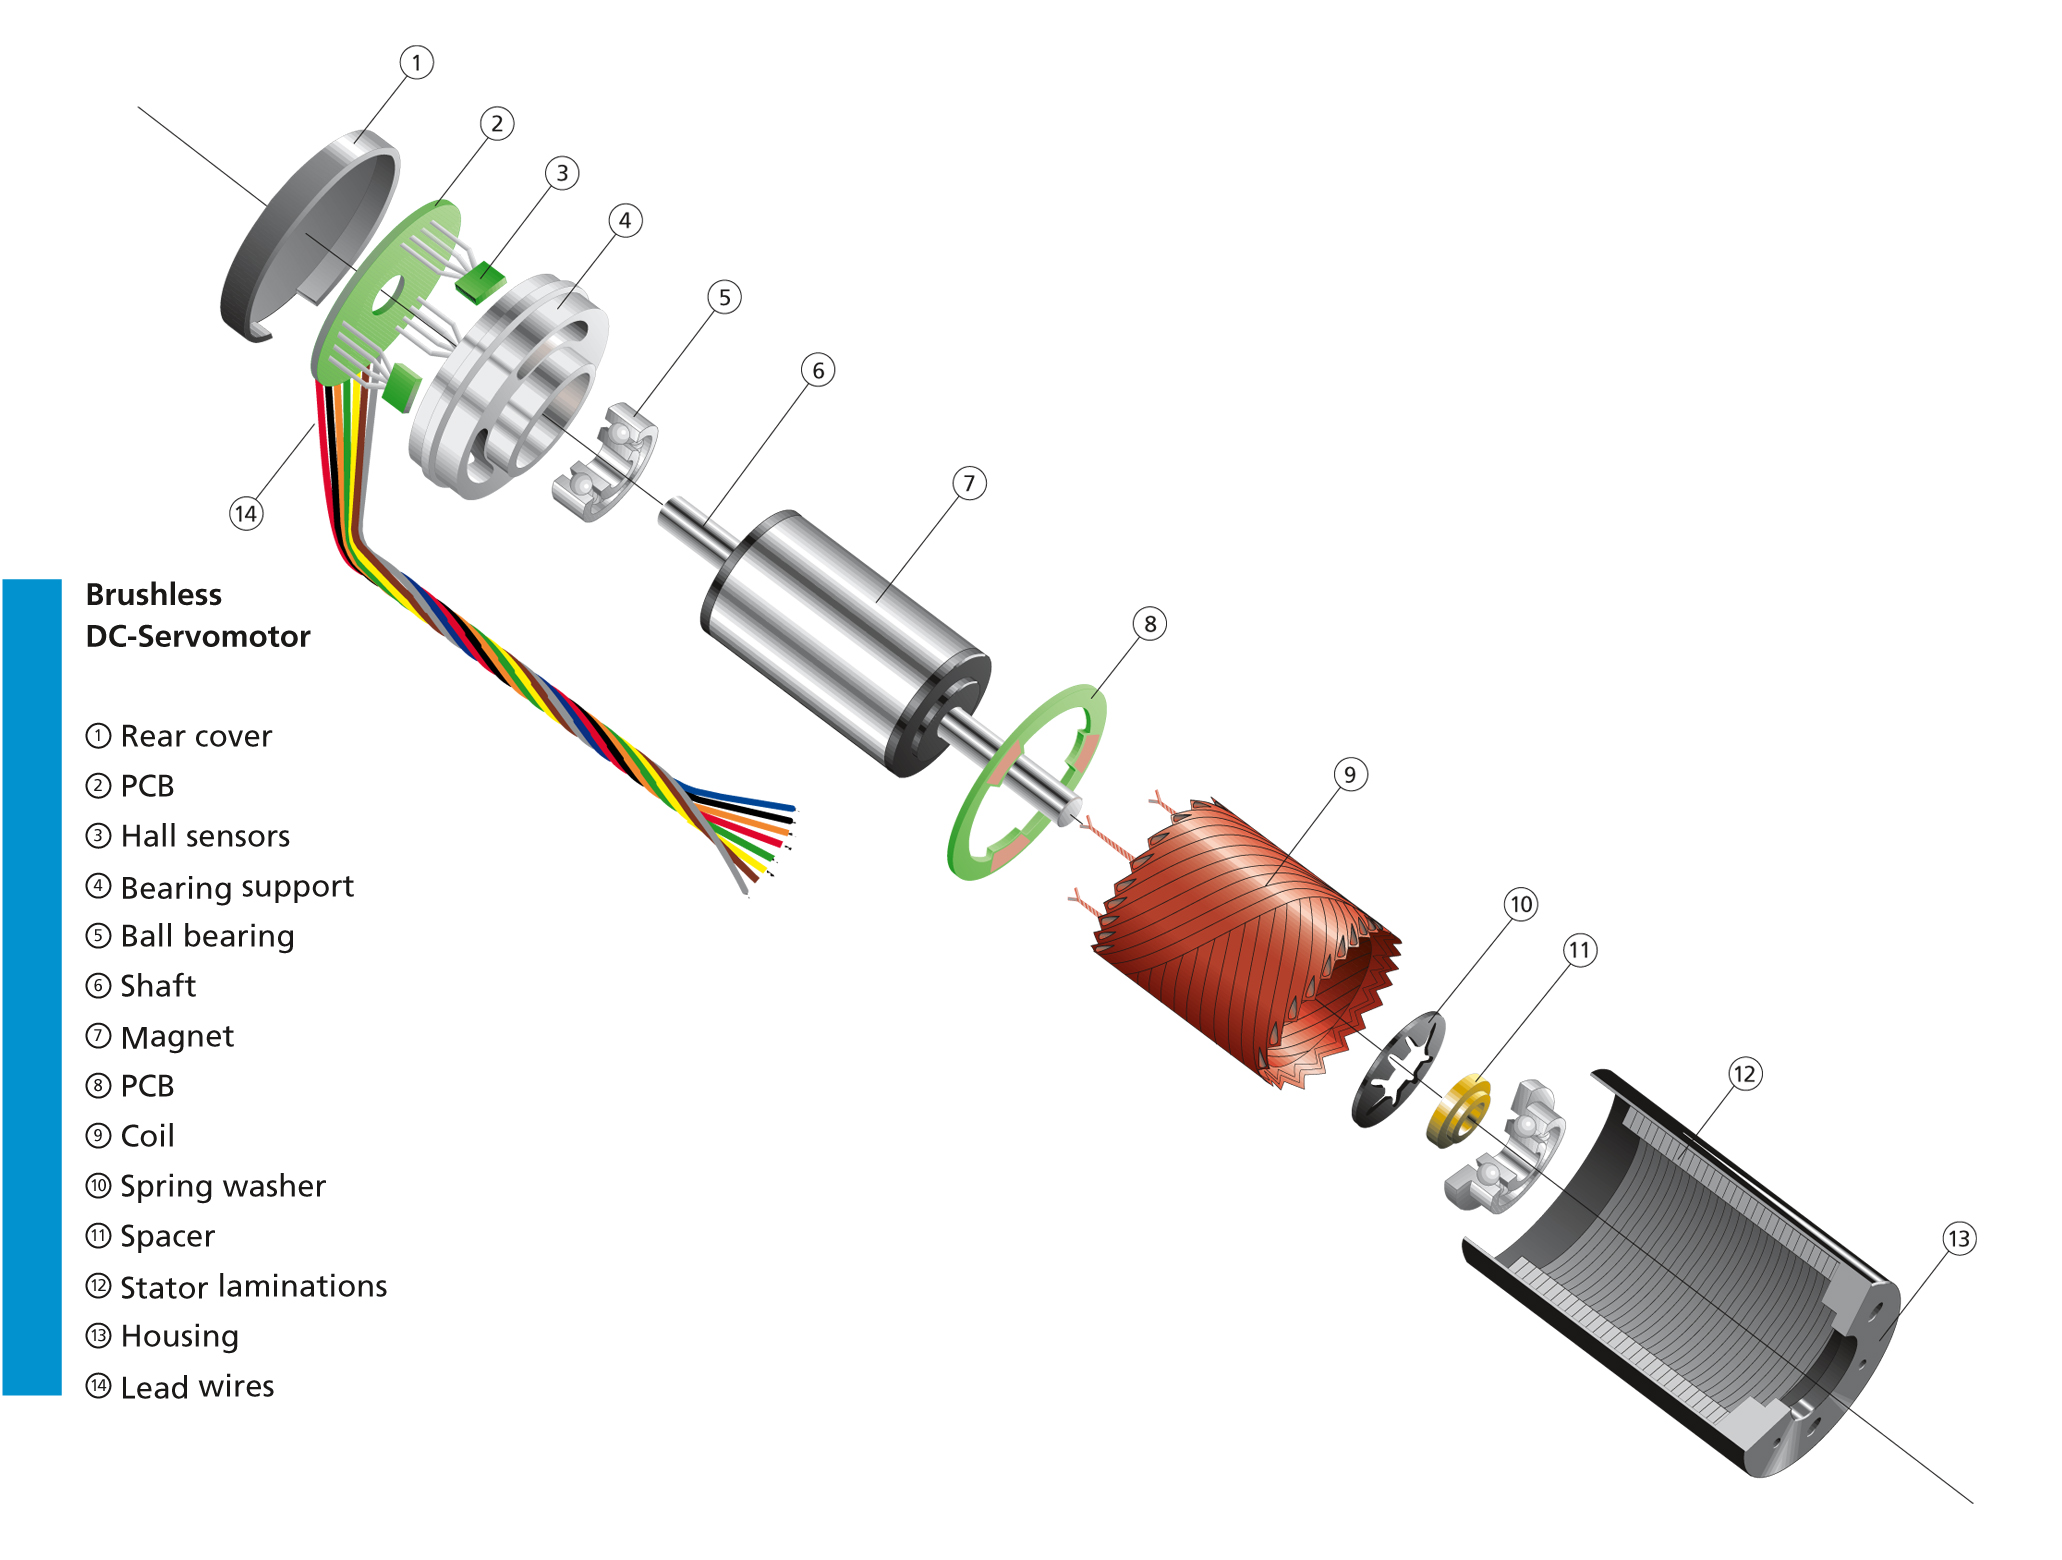 brushless motors compotech 3 Phase 12 Lead Electric Motor Diagrams DC Electric Motor Diagram